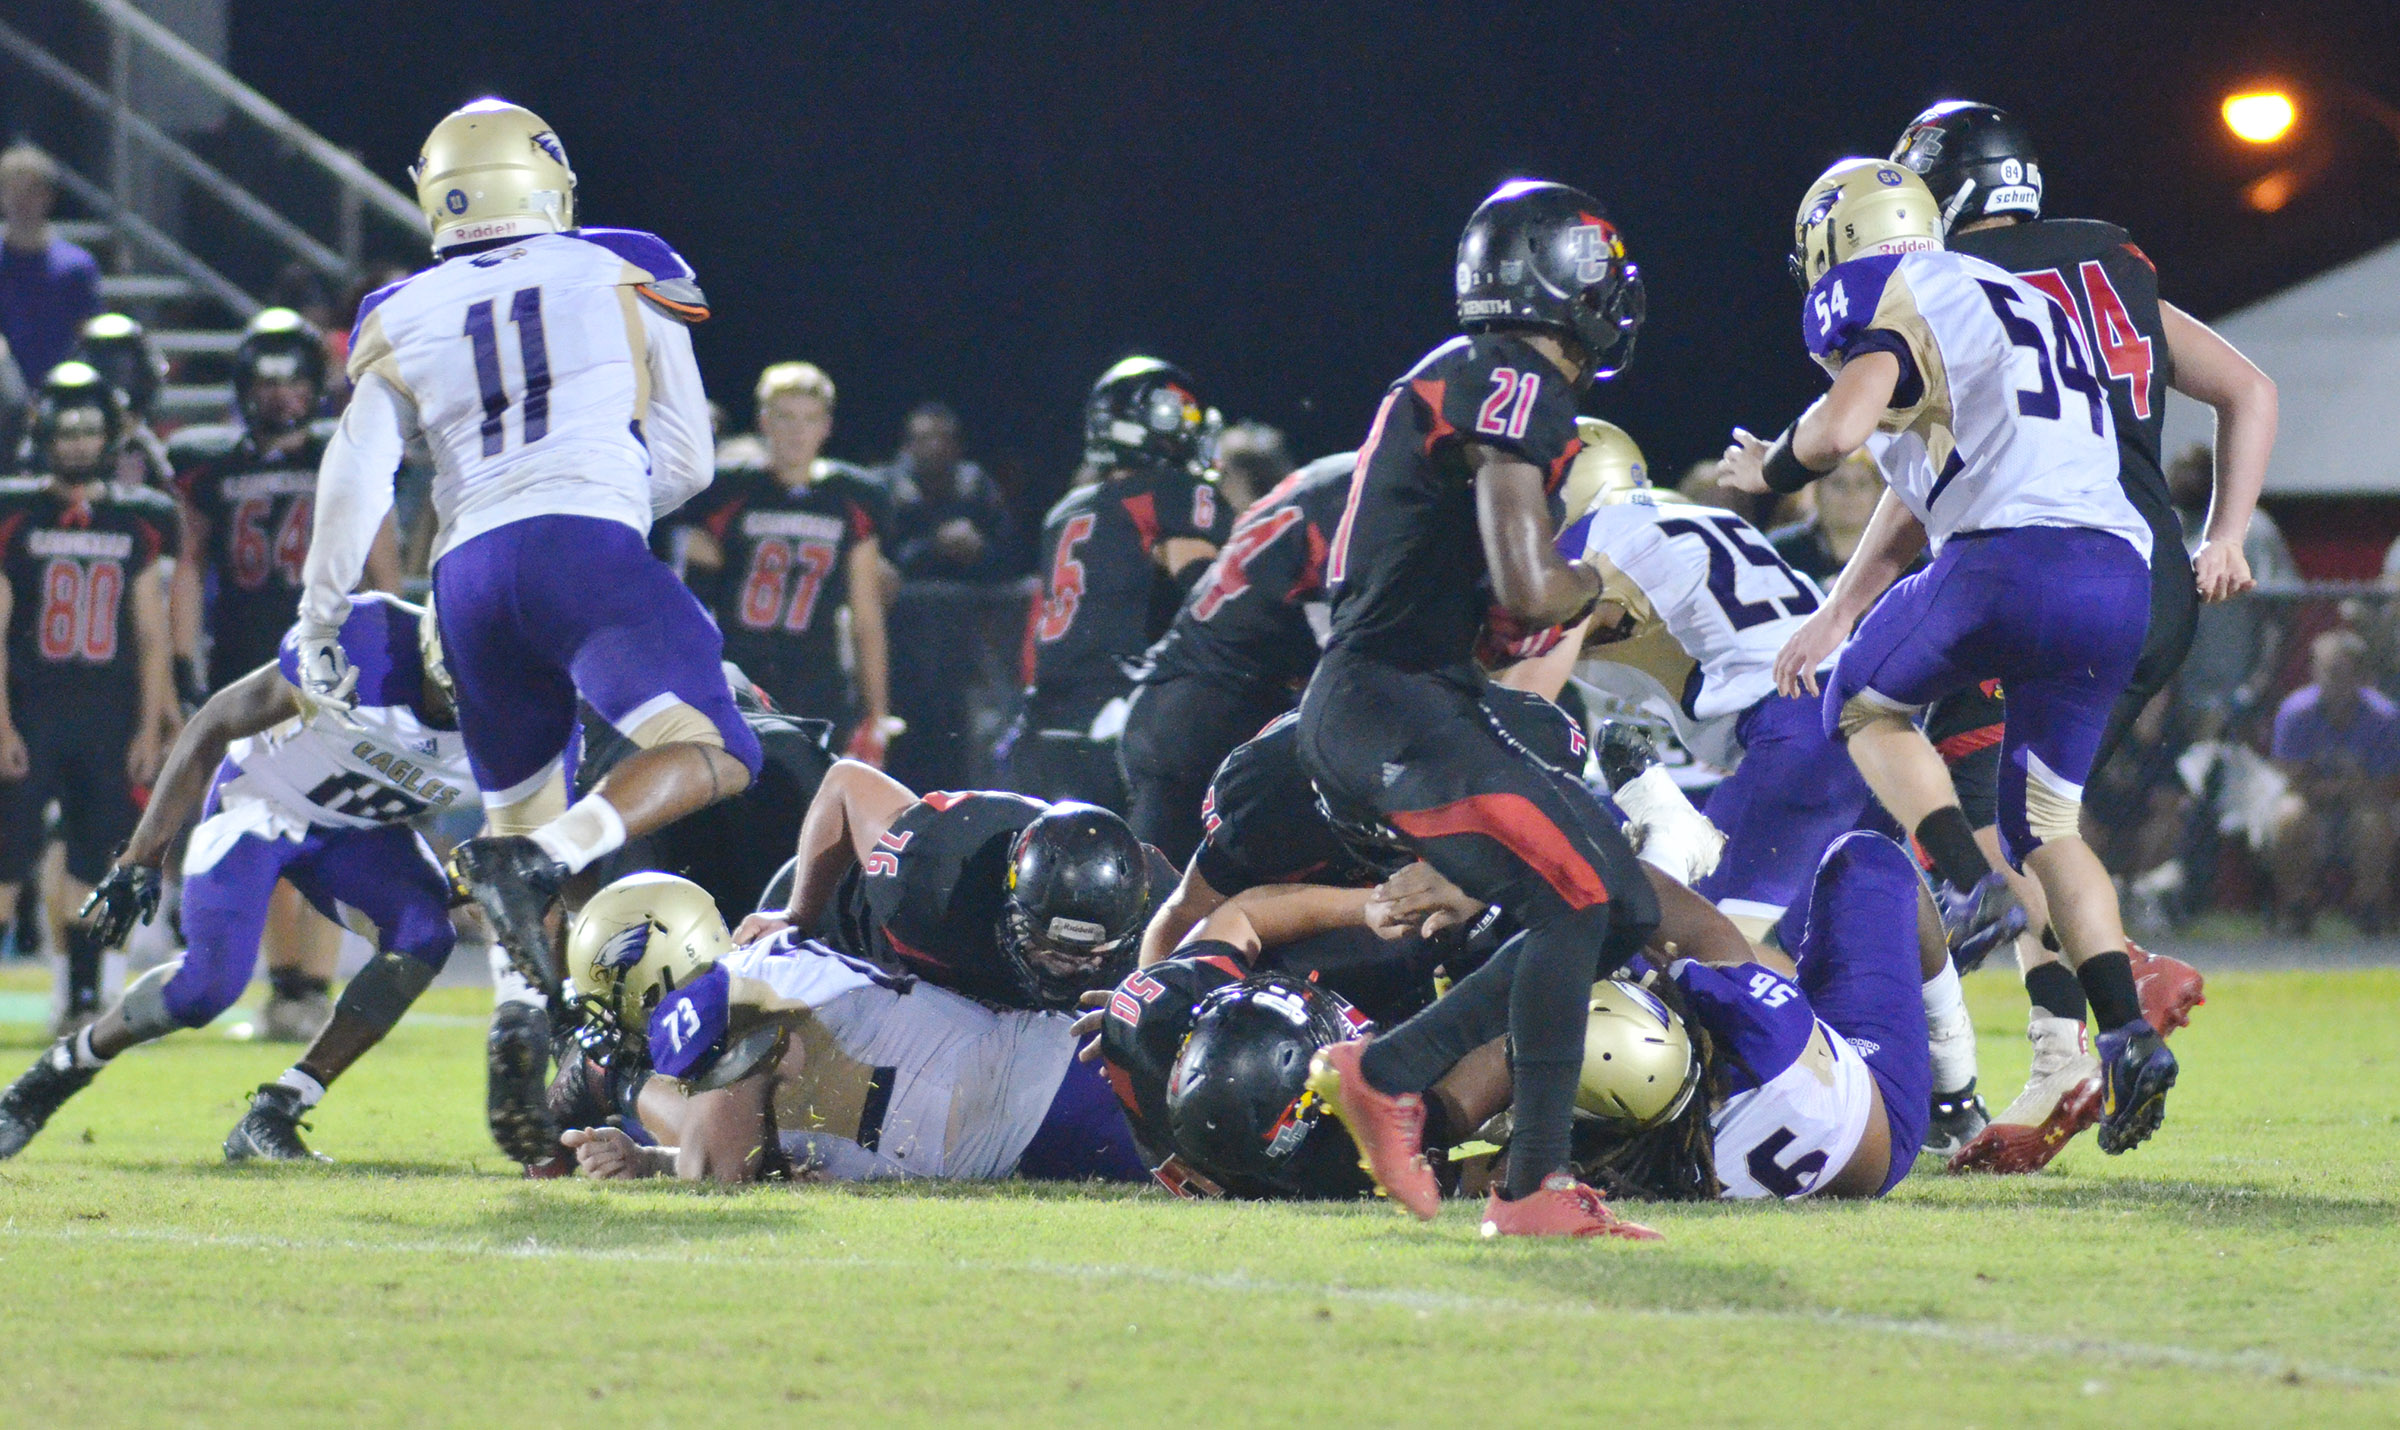 CHS football players tackle.